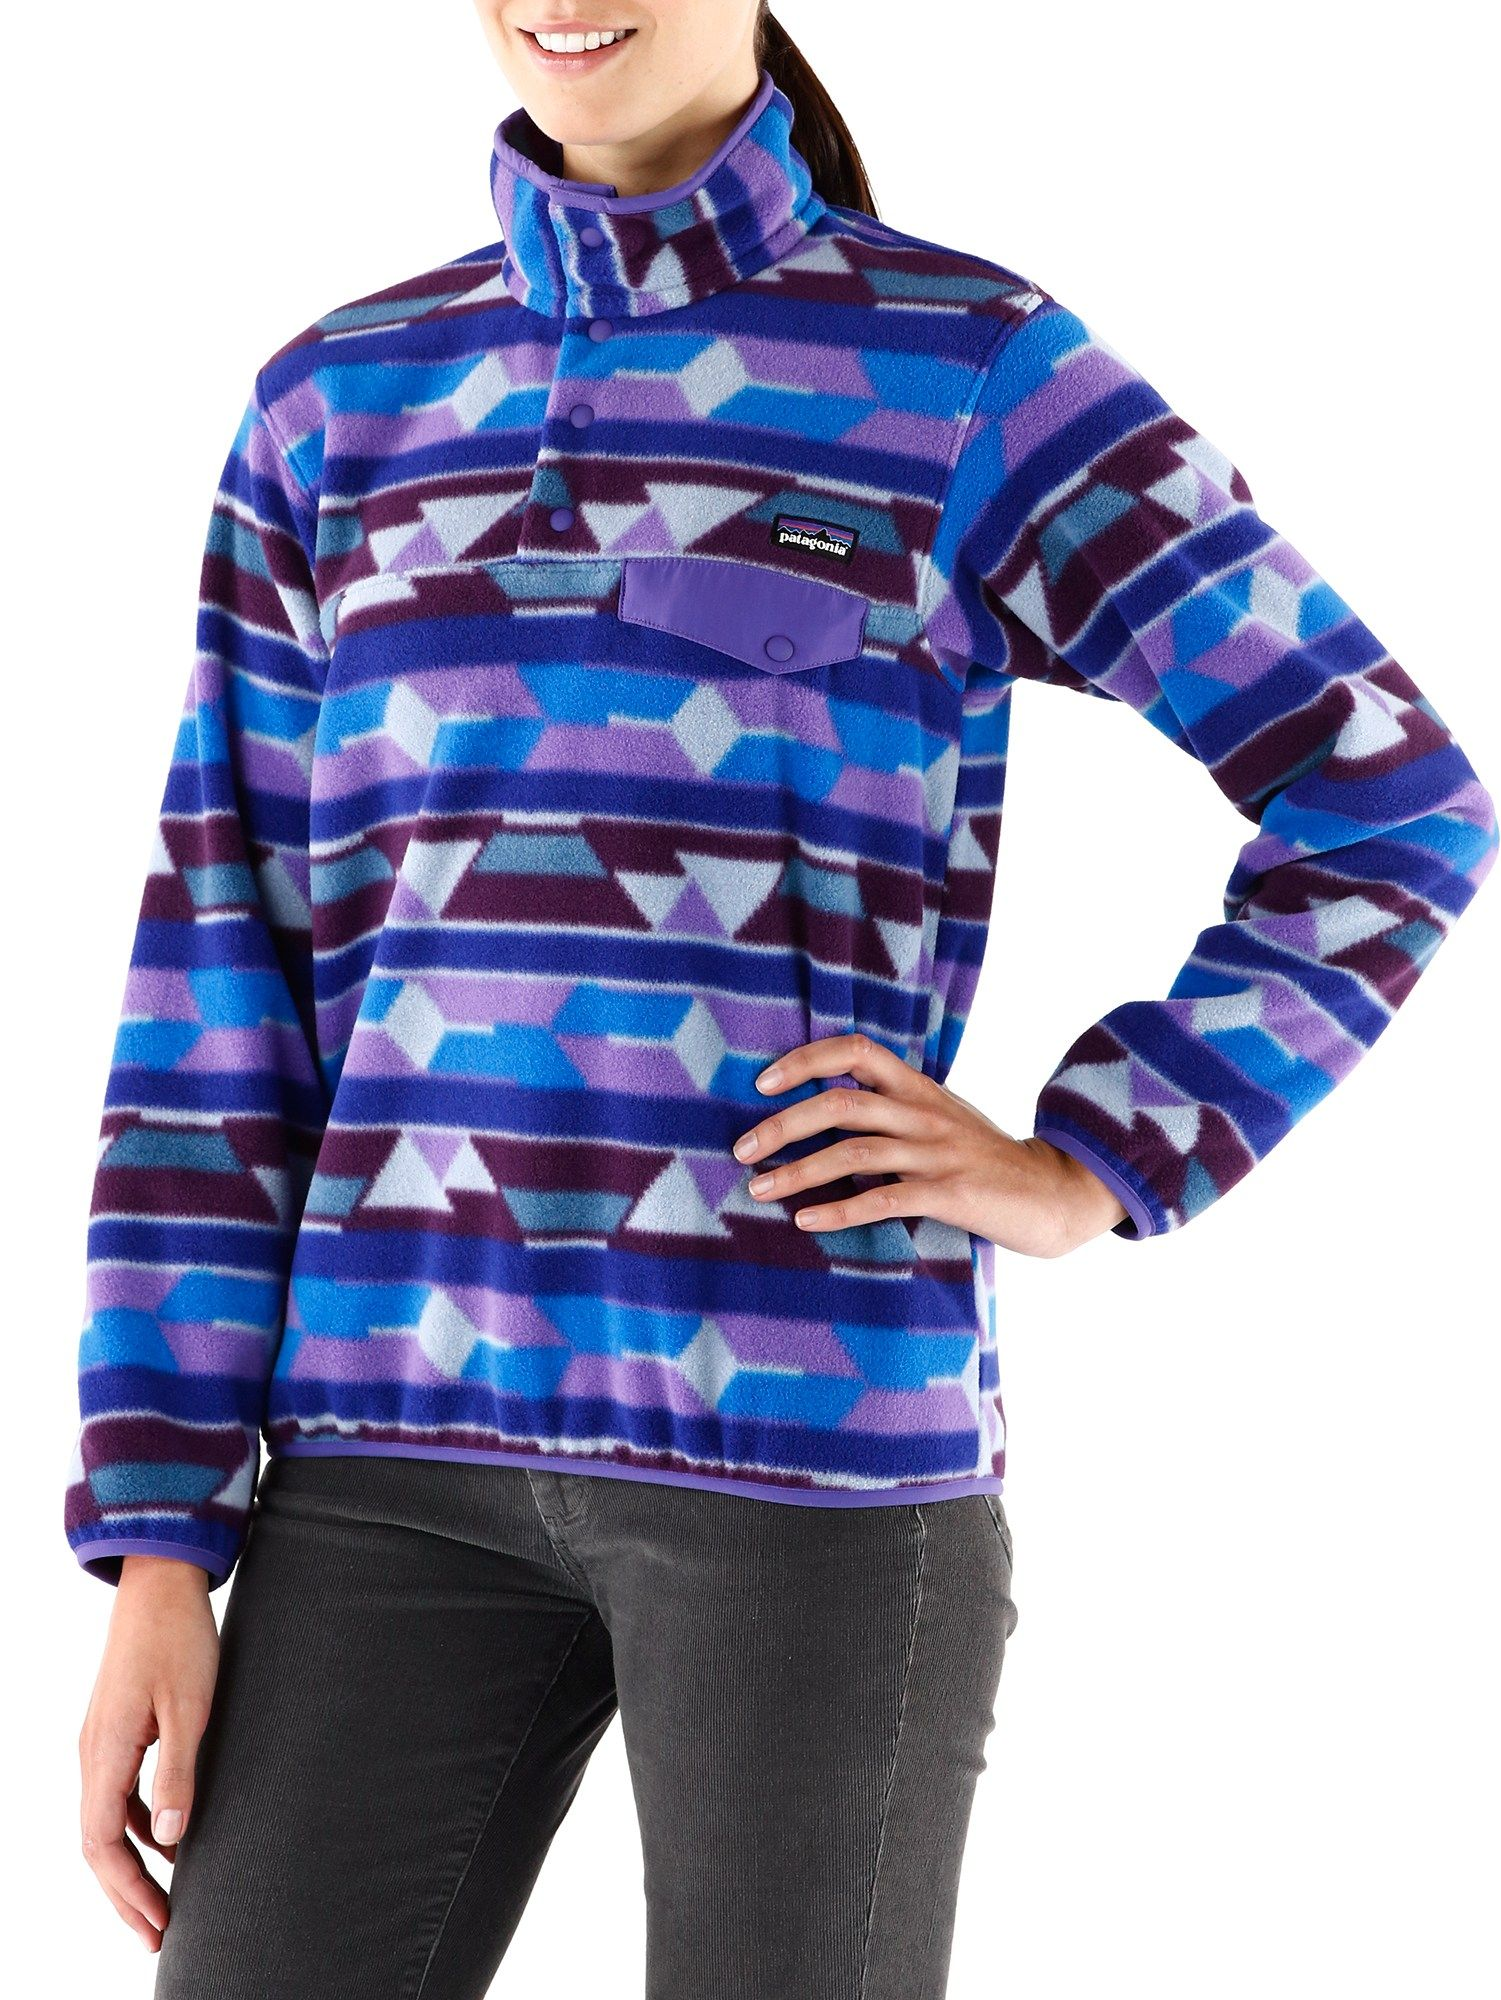 Patterned Patagonia Fleece Unique Inspiration Design